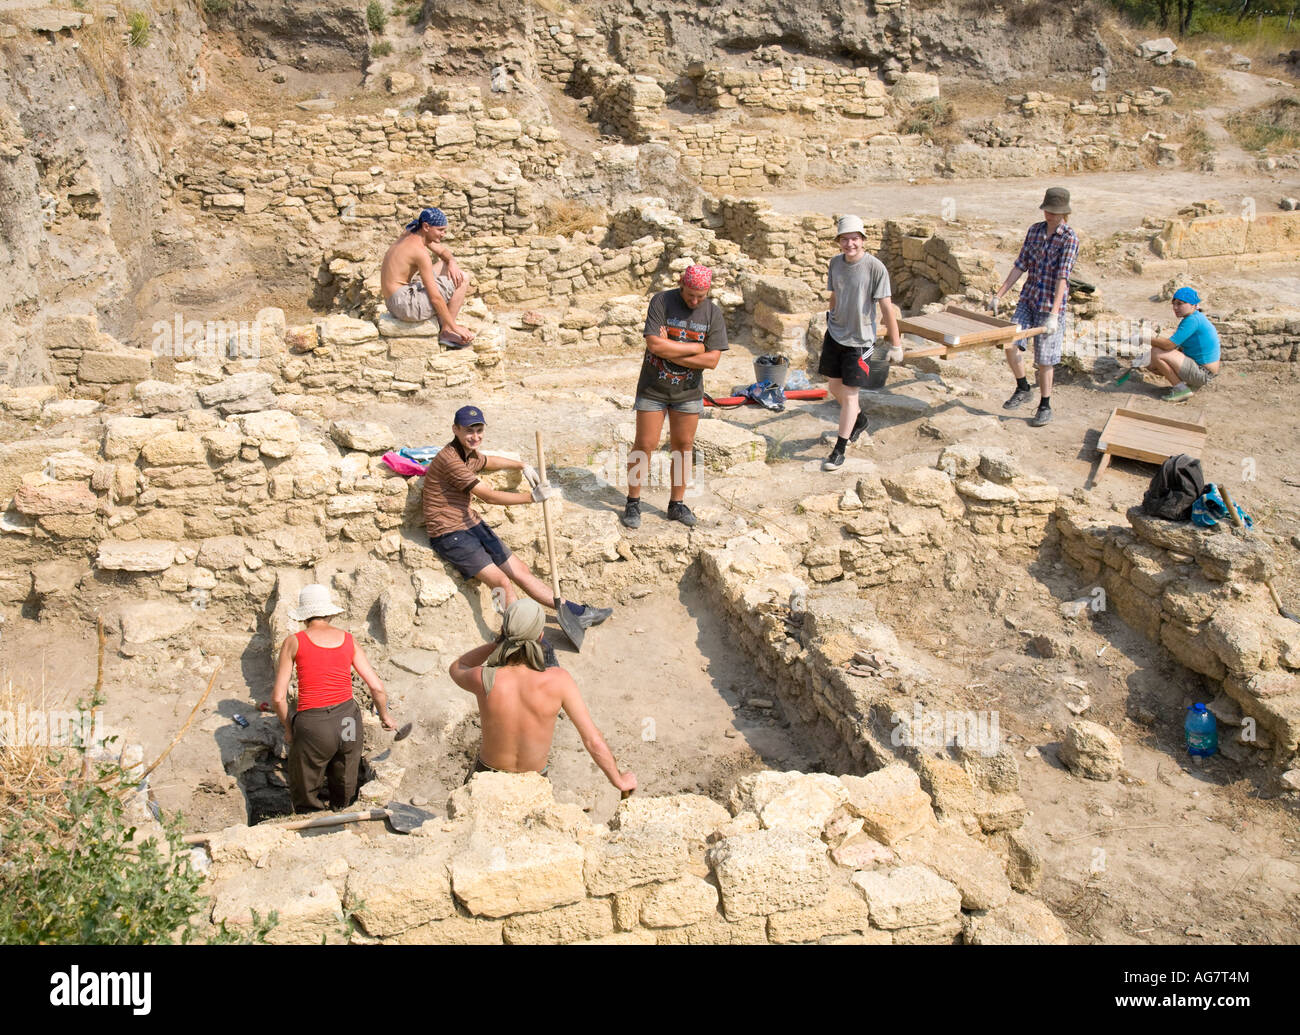 Archaeology News -- ScienceDaily